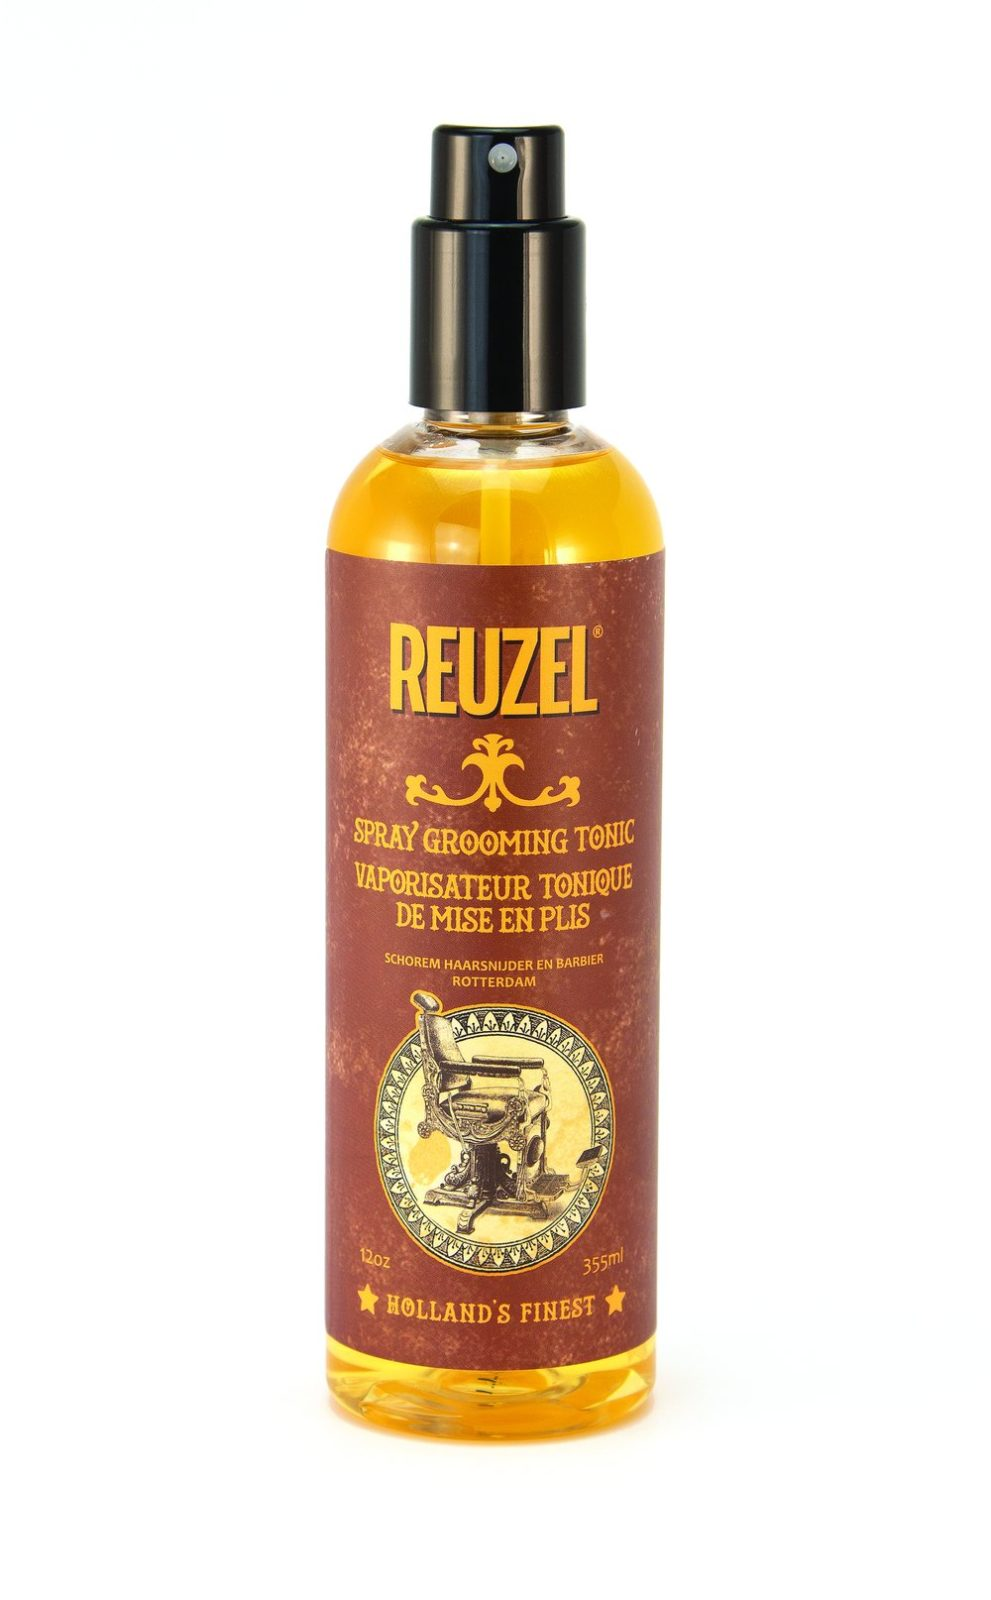 Tuotekuva: Reuzel Spray Grooming Tonic (355 ml)